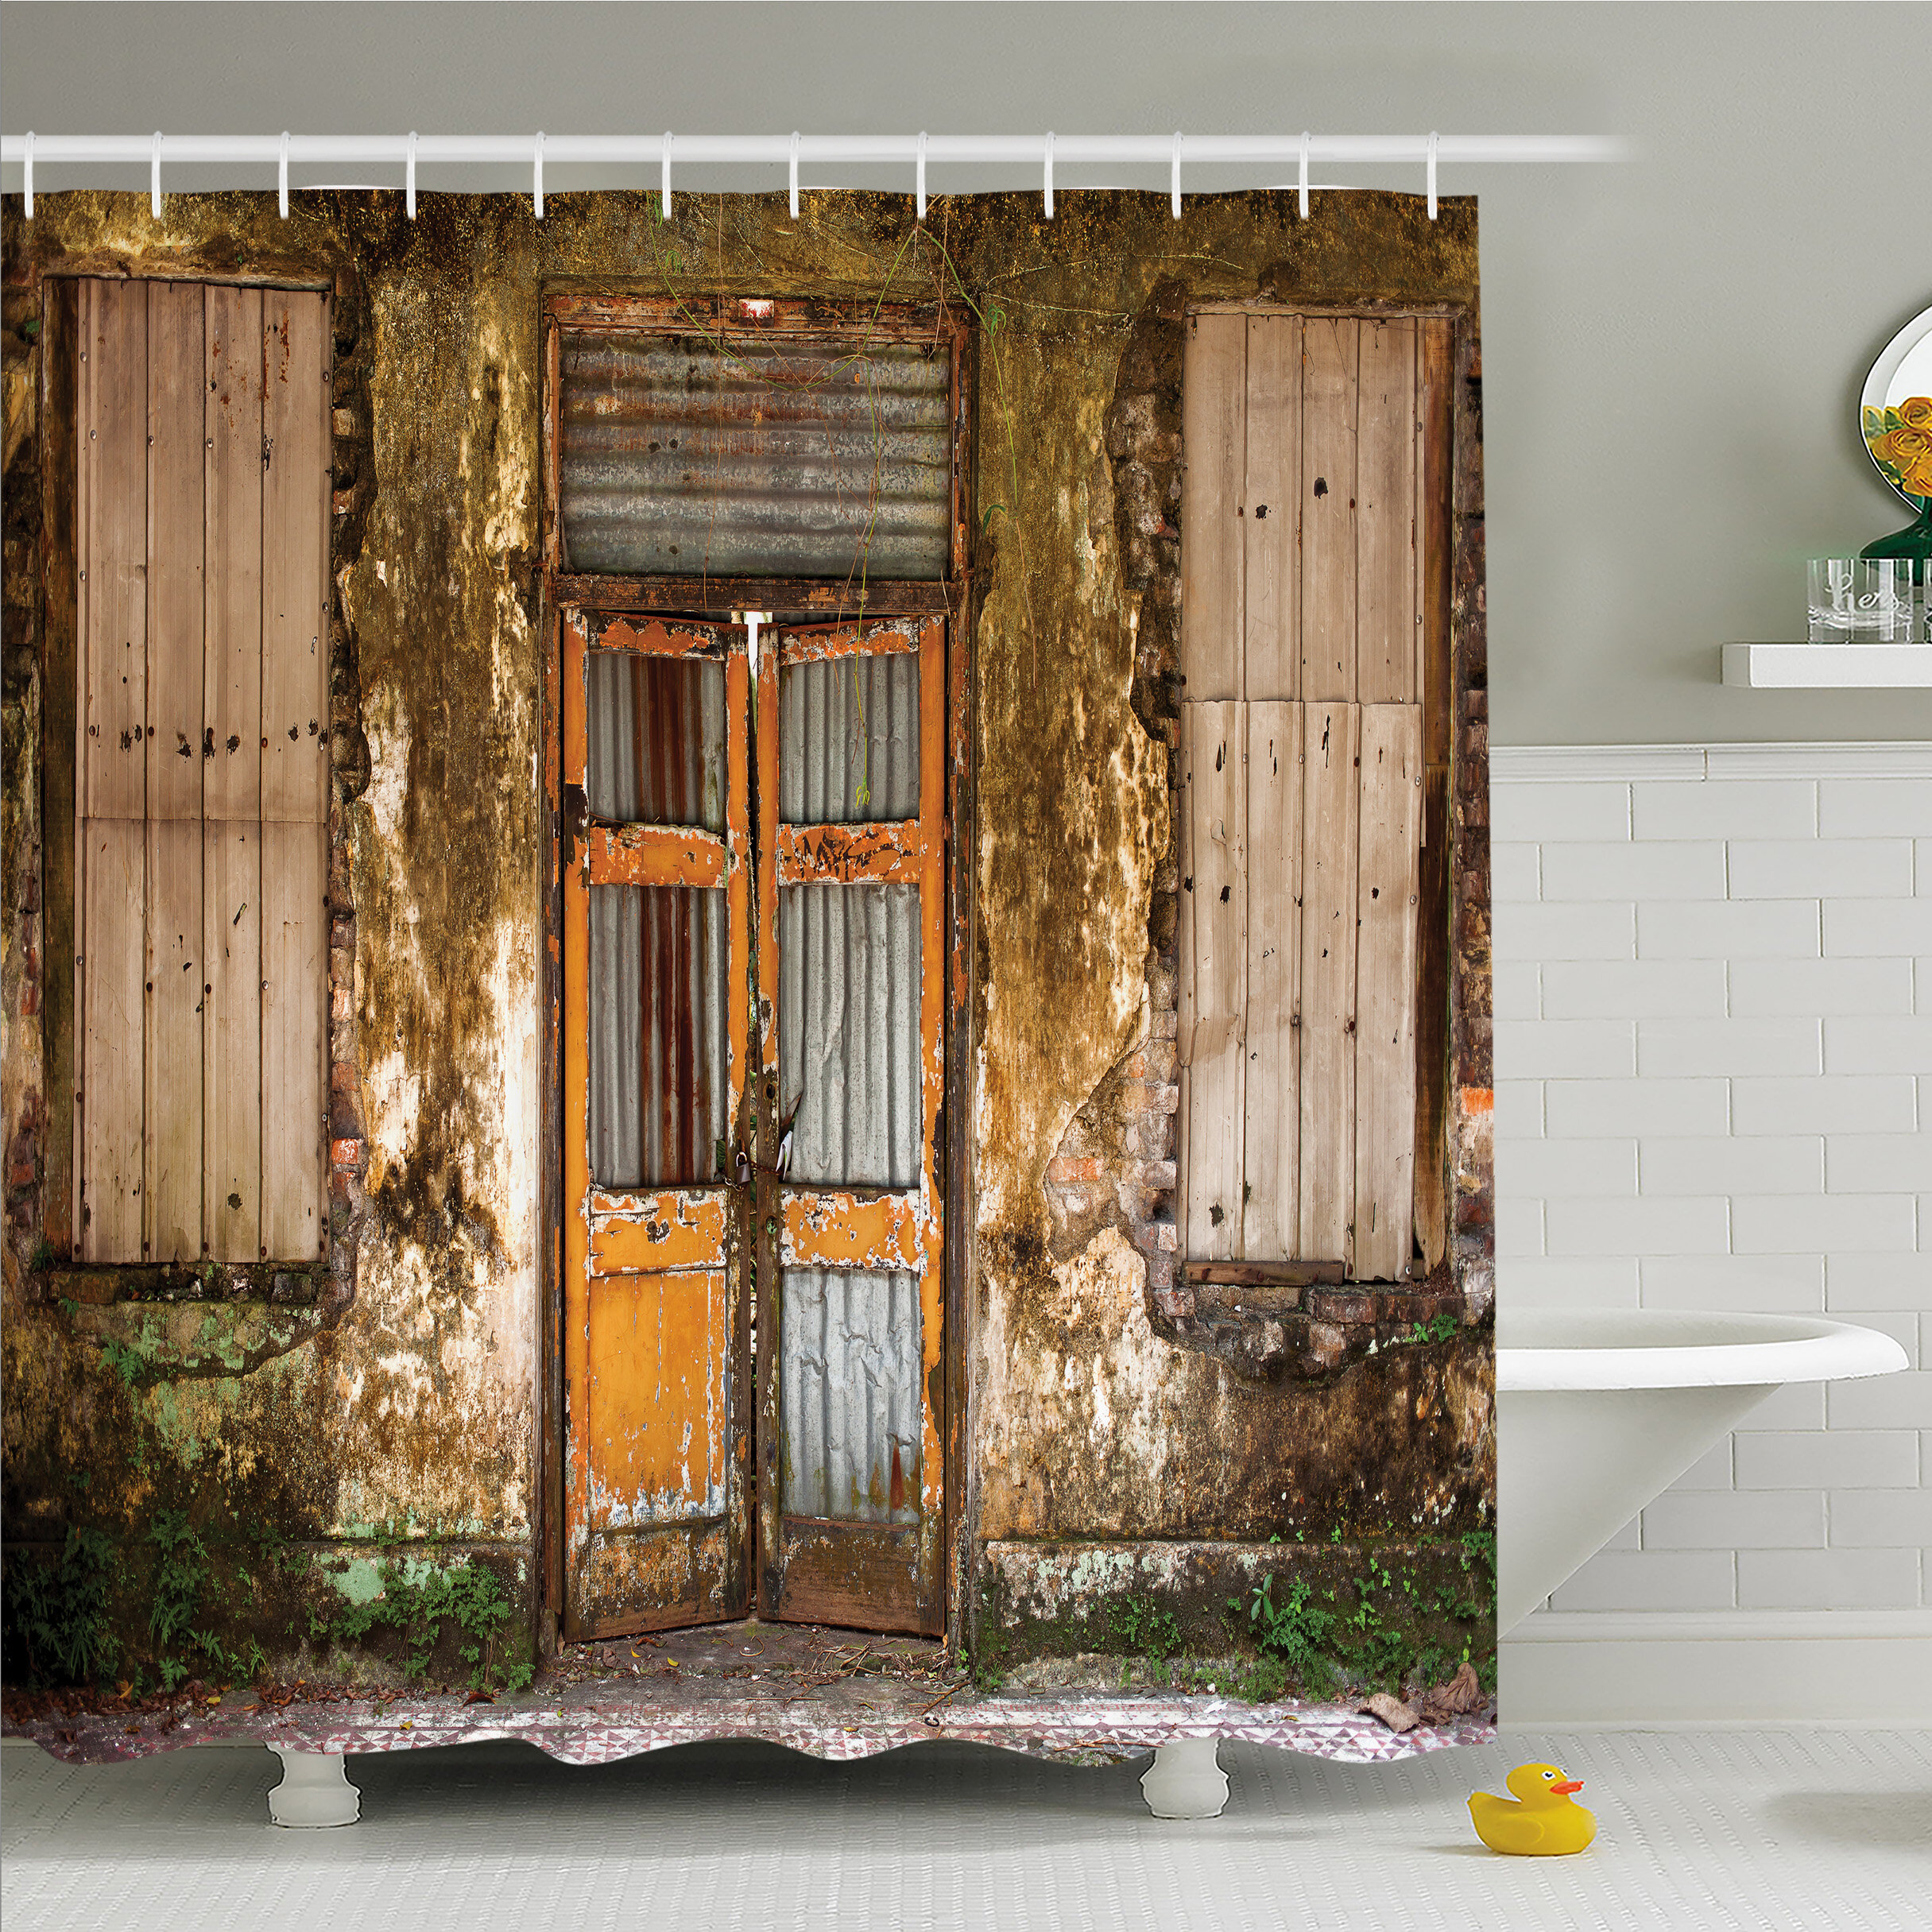 Rustic Home Damaged Shabby House With Boarded Up Rusty Doors And Mould Windows Home Decor Shower Curtain Set